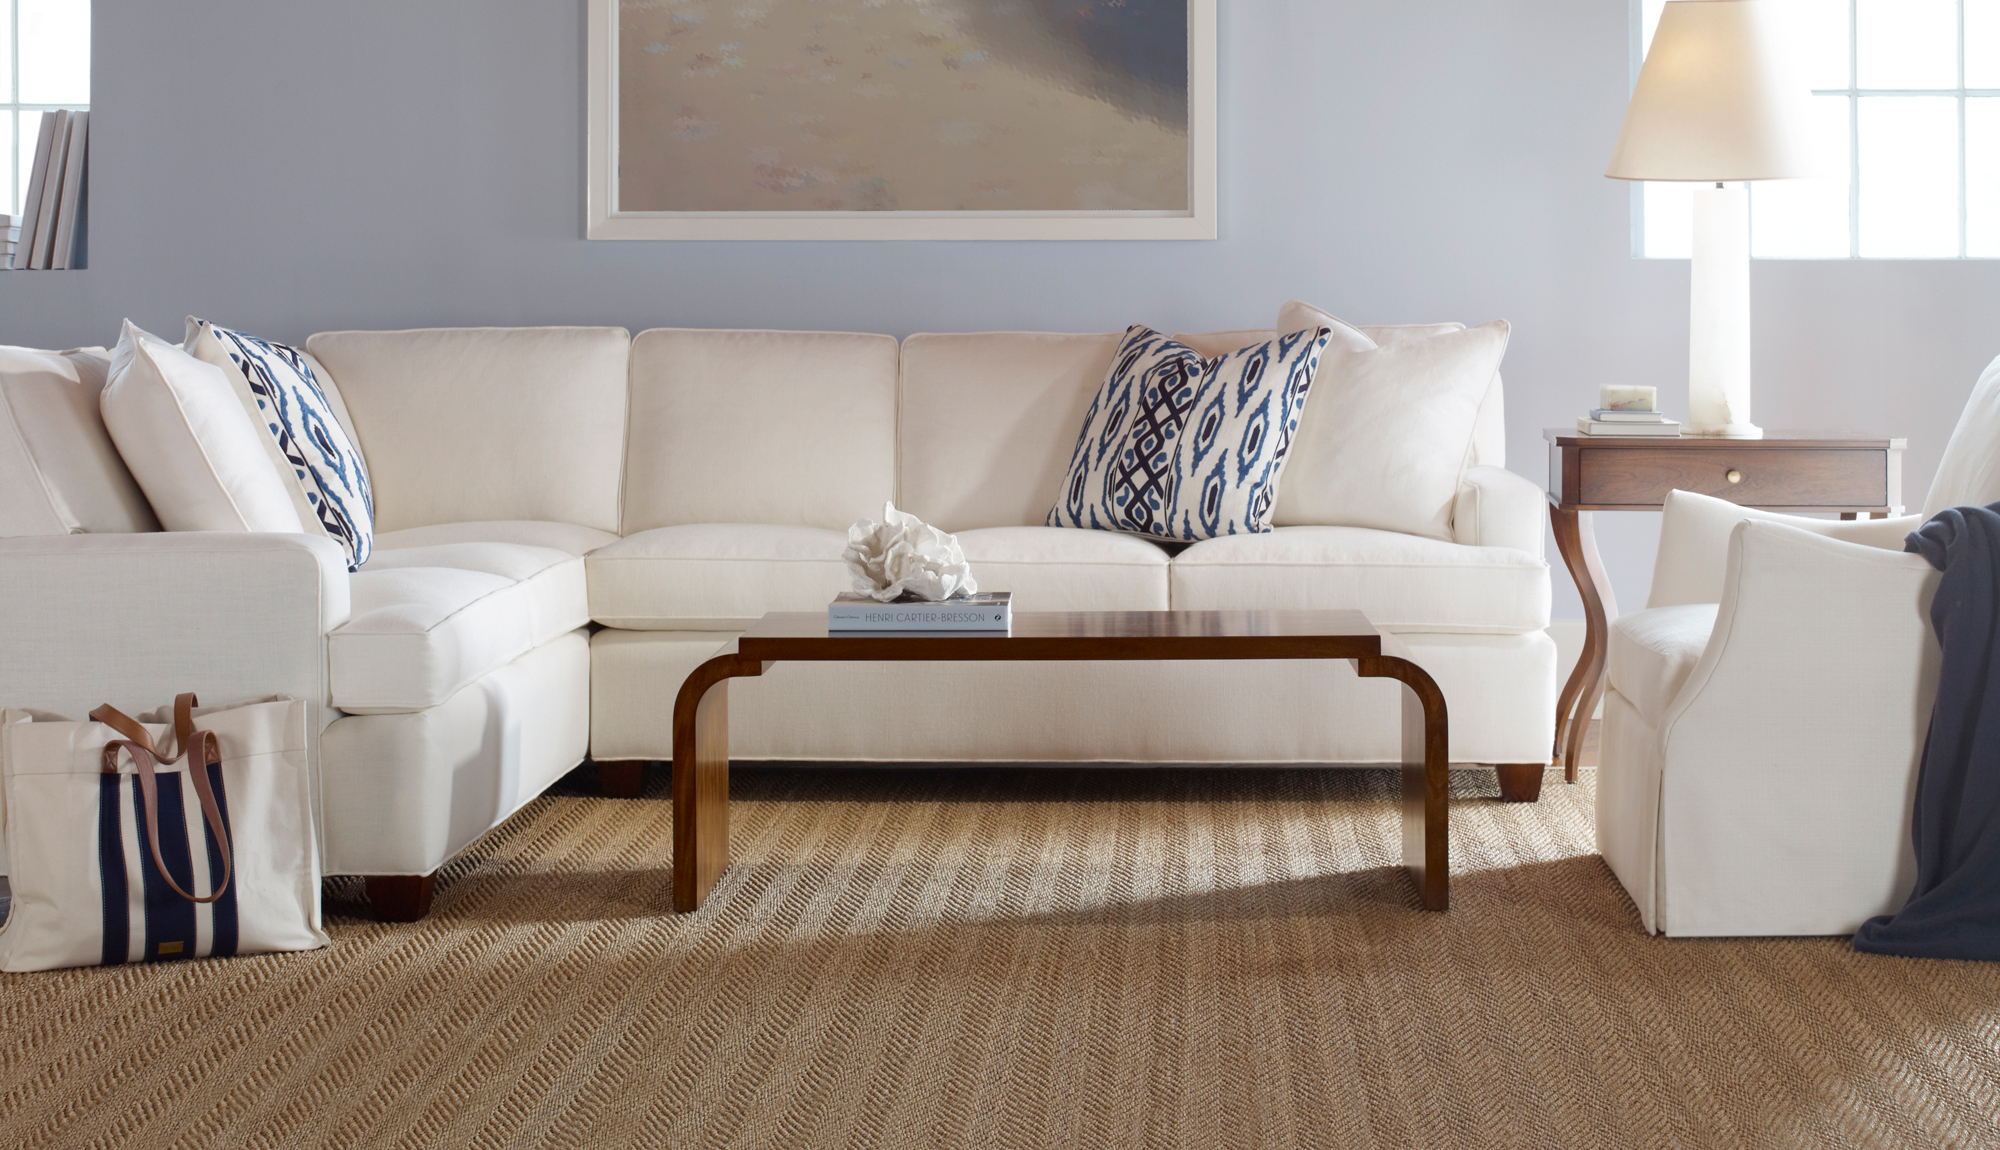 Captivating Collection: Highland House Upholstery Item Shown: 8010